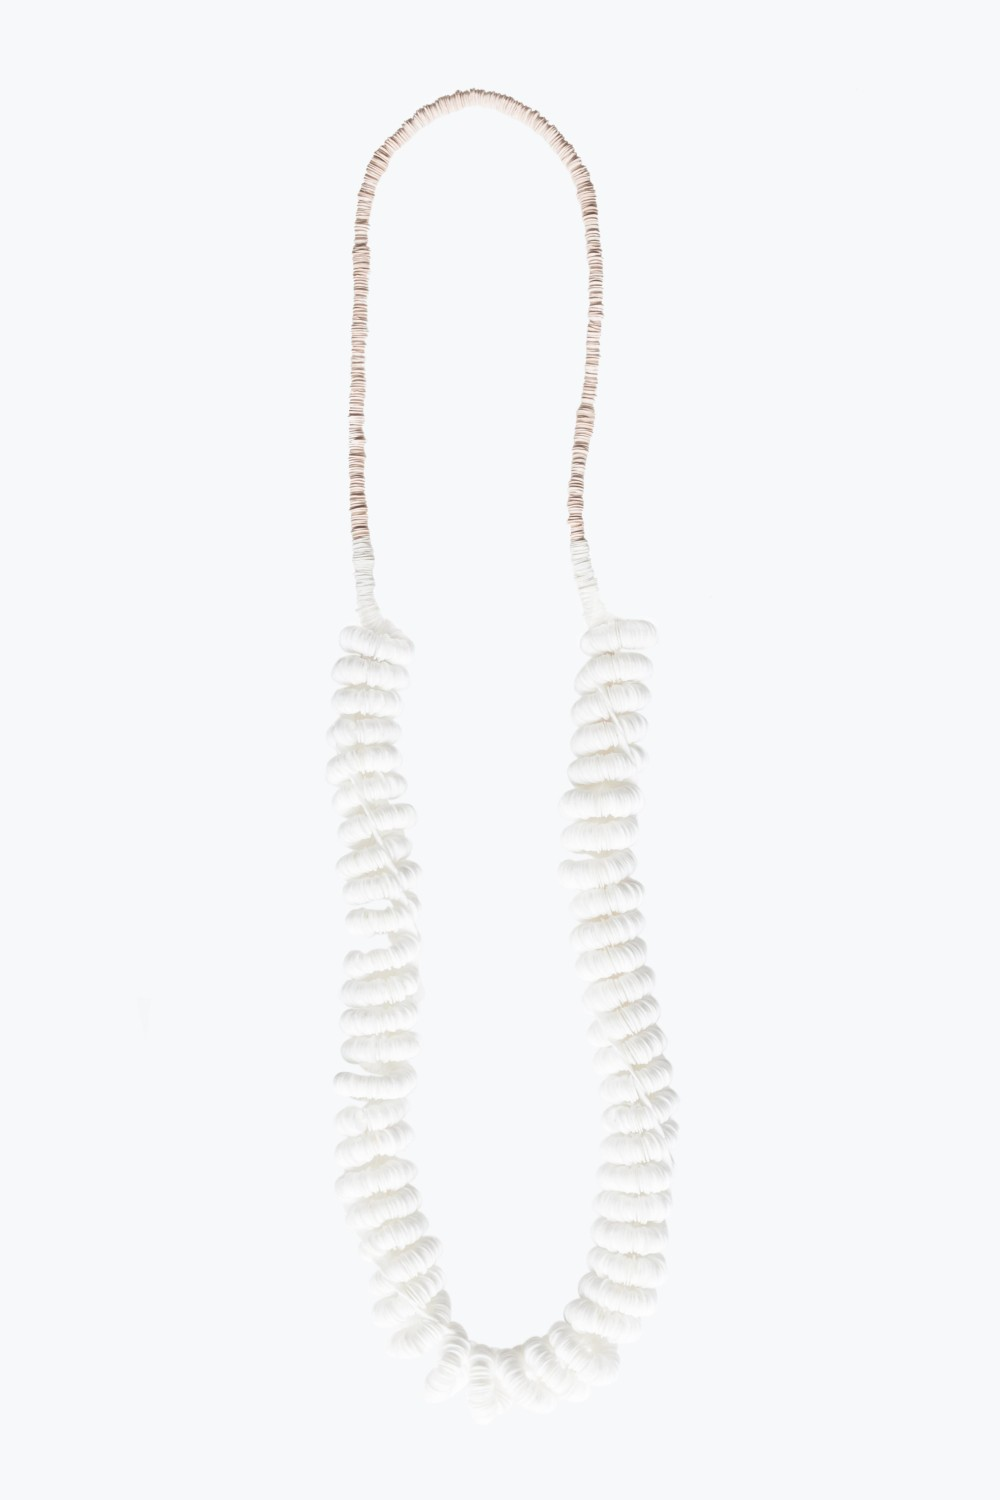 ping and whitte plastic necklace